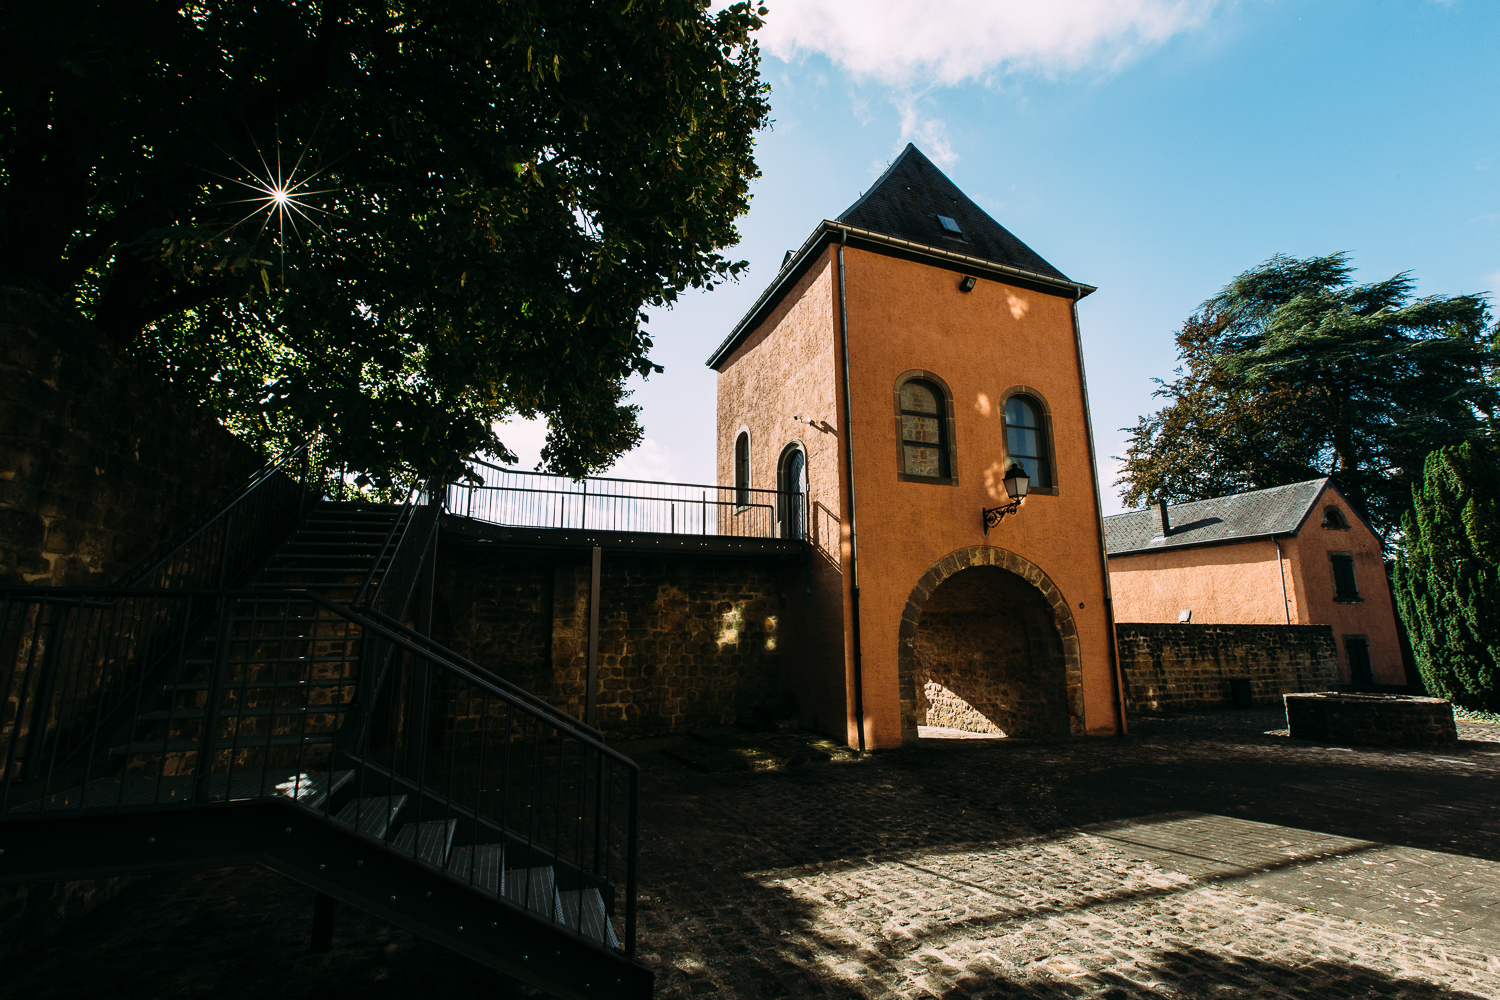 20140819 - Location Scouting-5.jpg